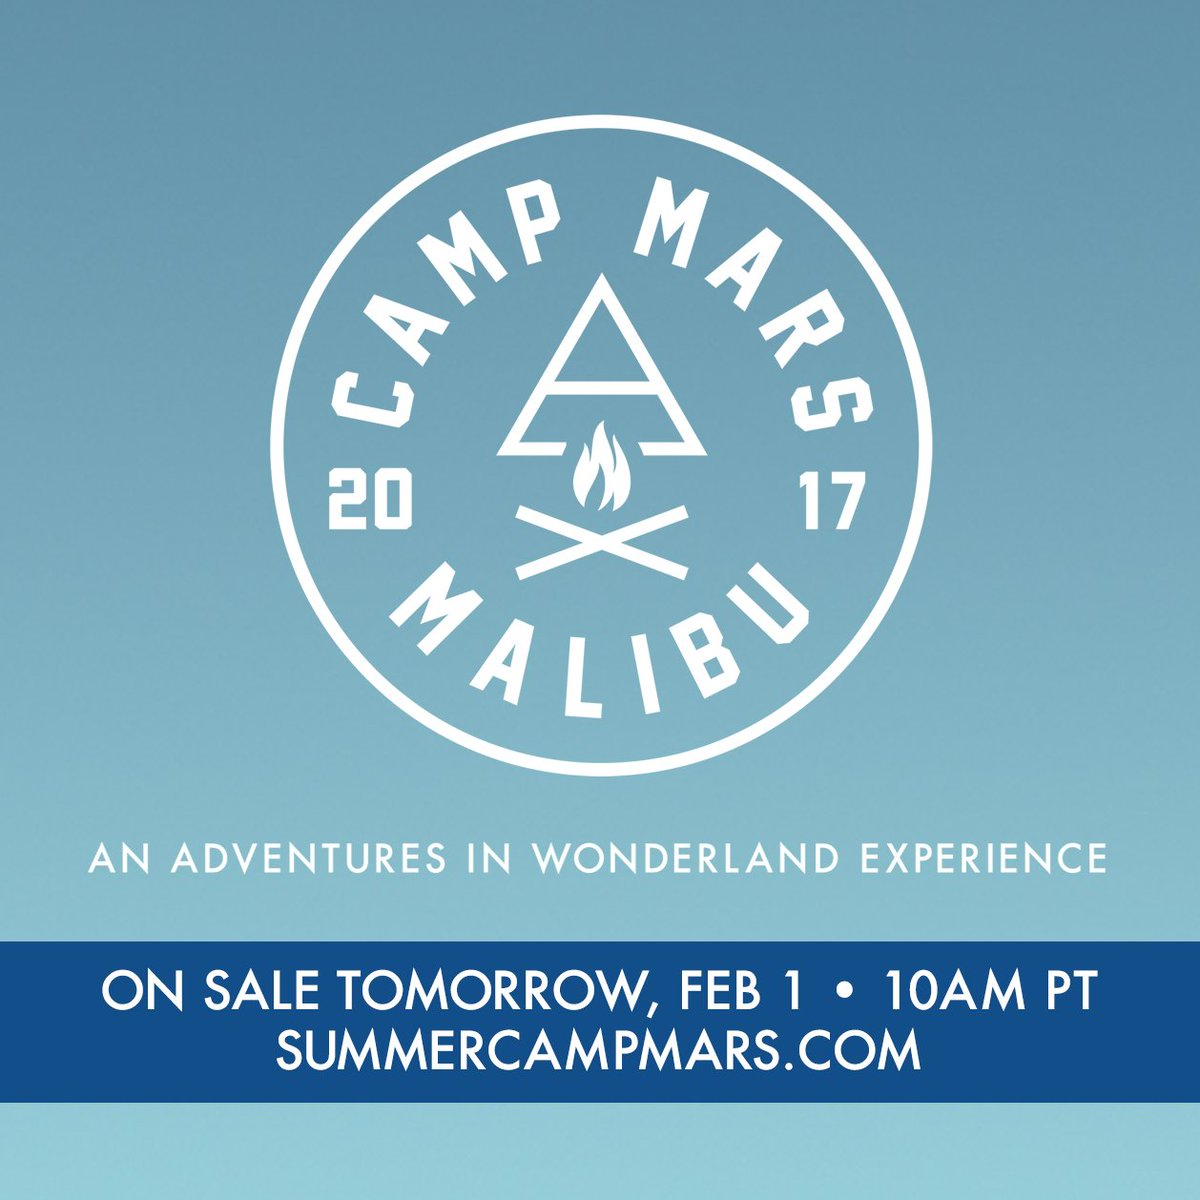 #CampMars Festival On Sale TOMORROW Feb 1st! https://t.co/uhdPT2dSE0 @30SECONDSTOMARS https://t.co/MwQHnrzZID